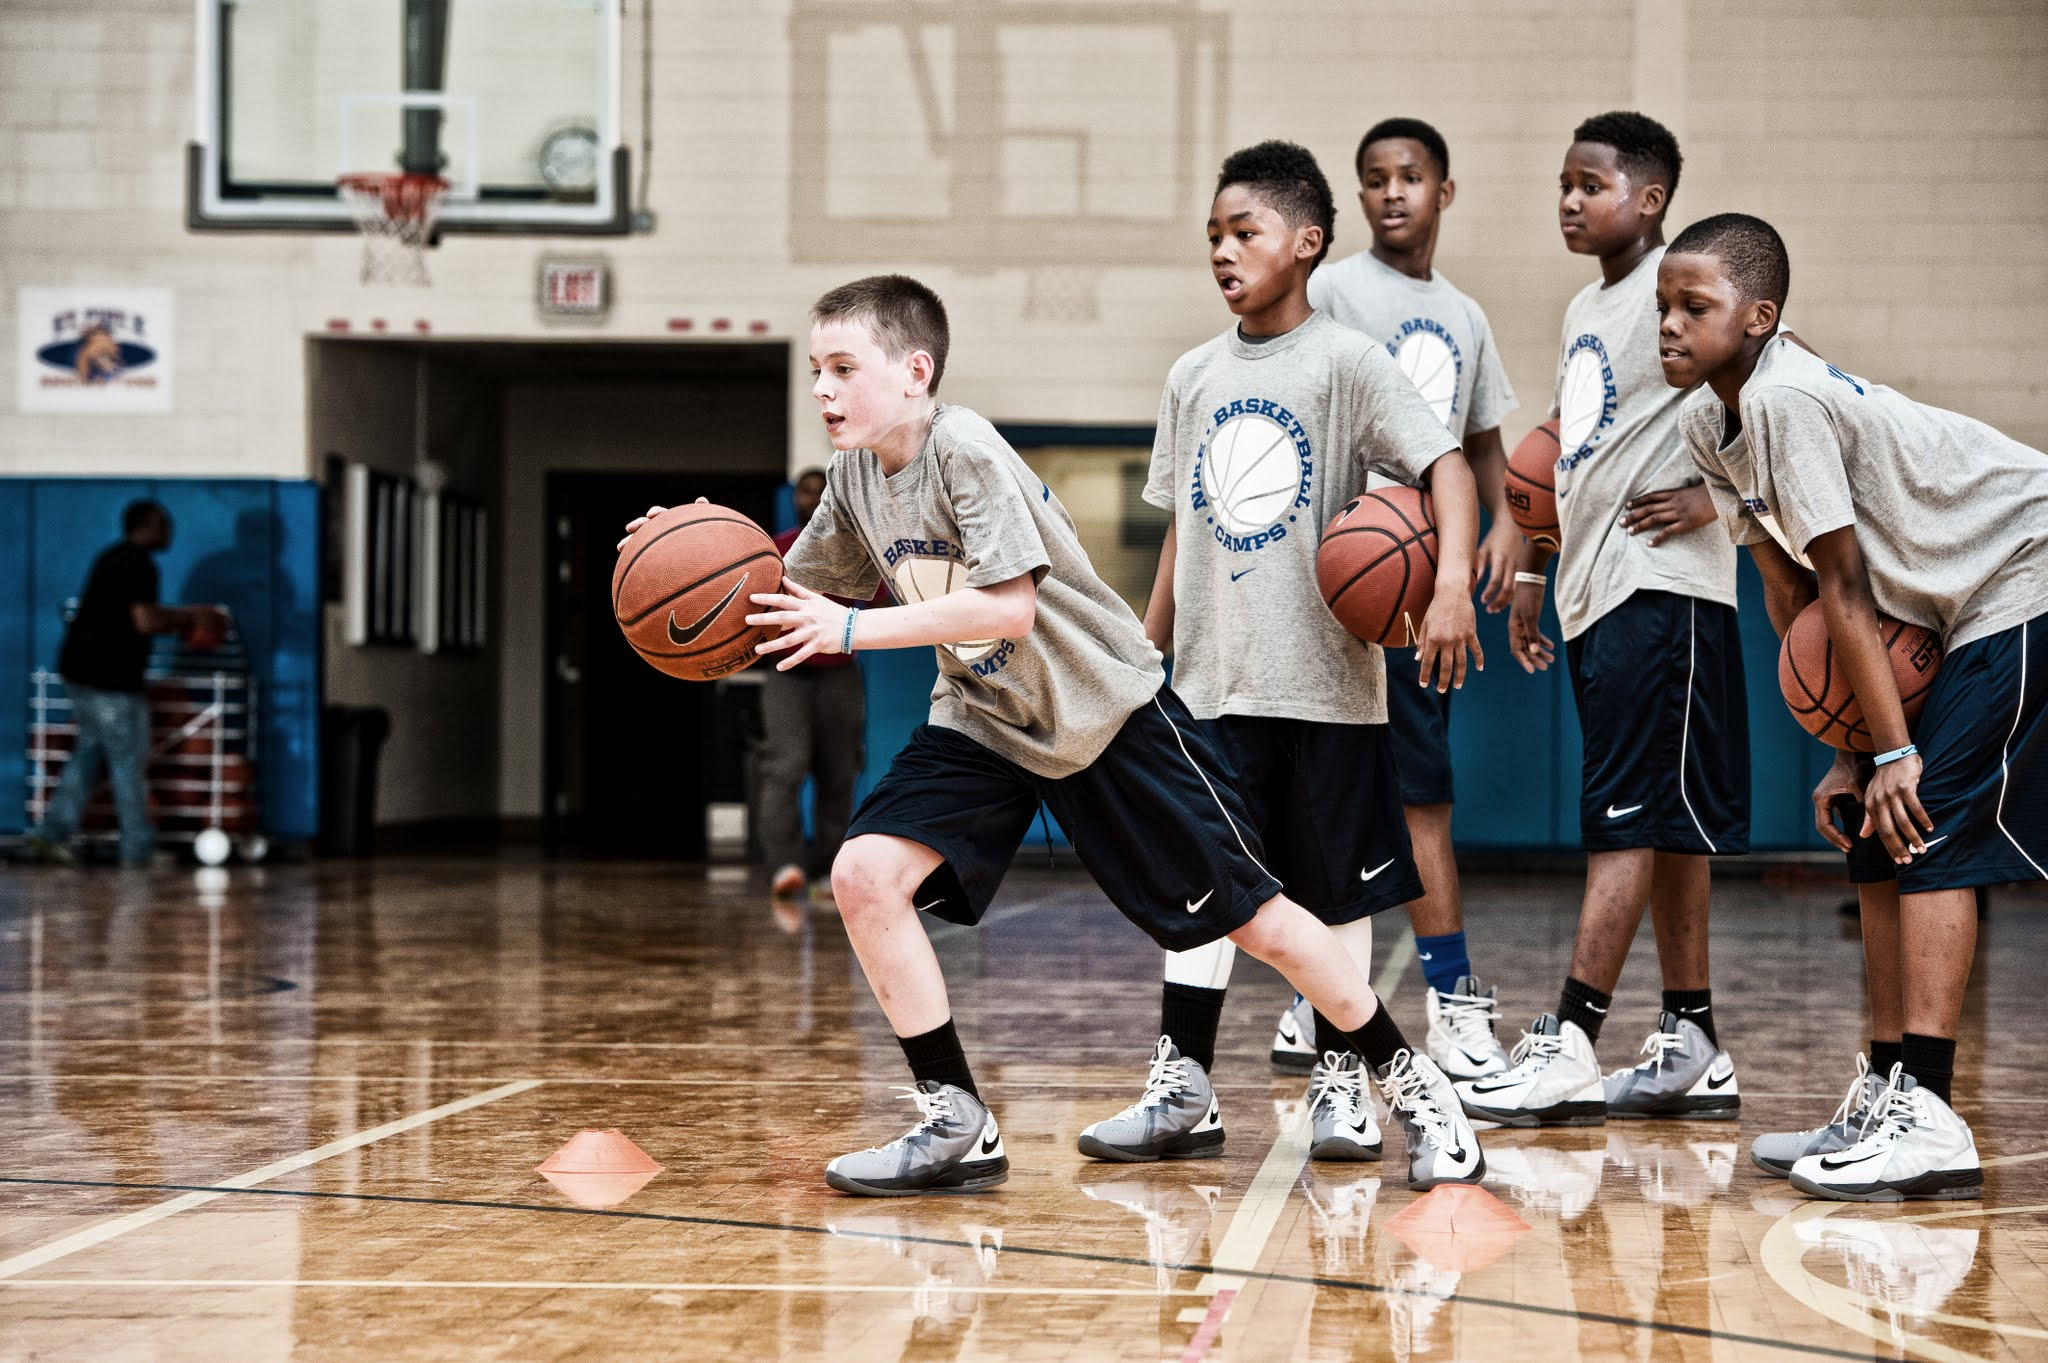 NIKE_Basketball_Camp_Enhanced_HR-43.jpg